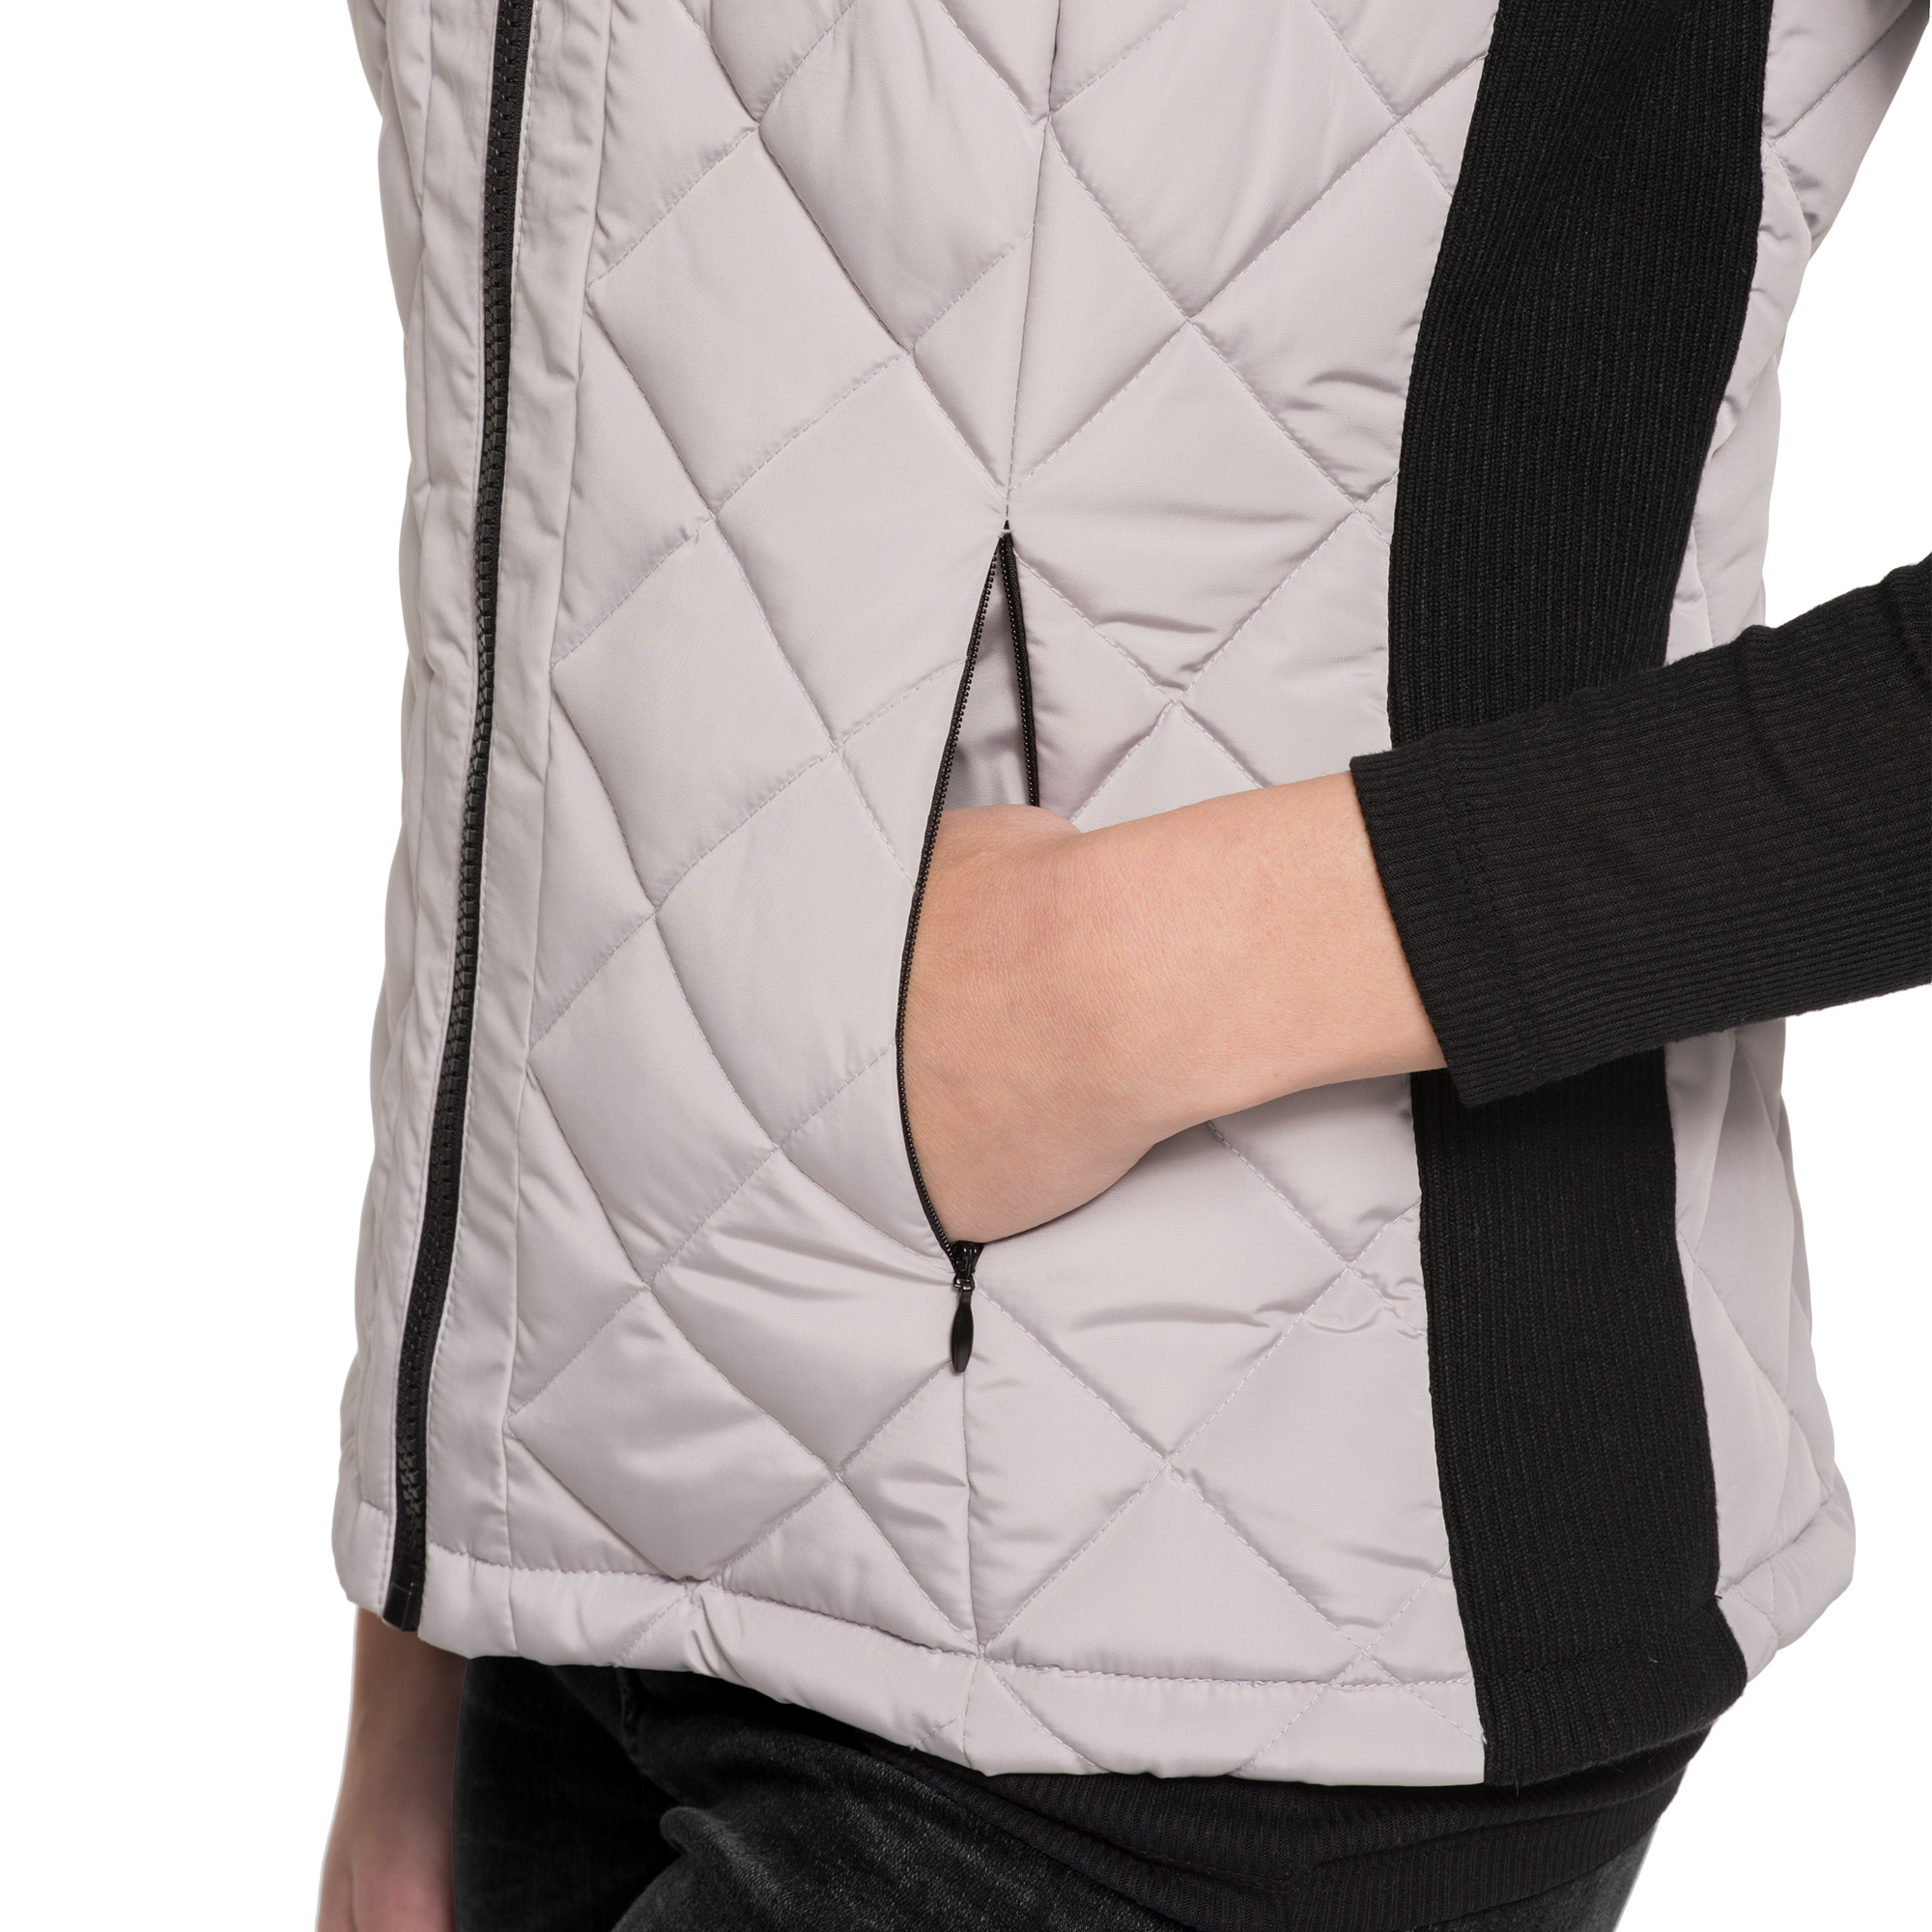 Large, Black Andrew Marc Womens Quilted Vest with Ribbed Knit side Panels and Collar